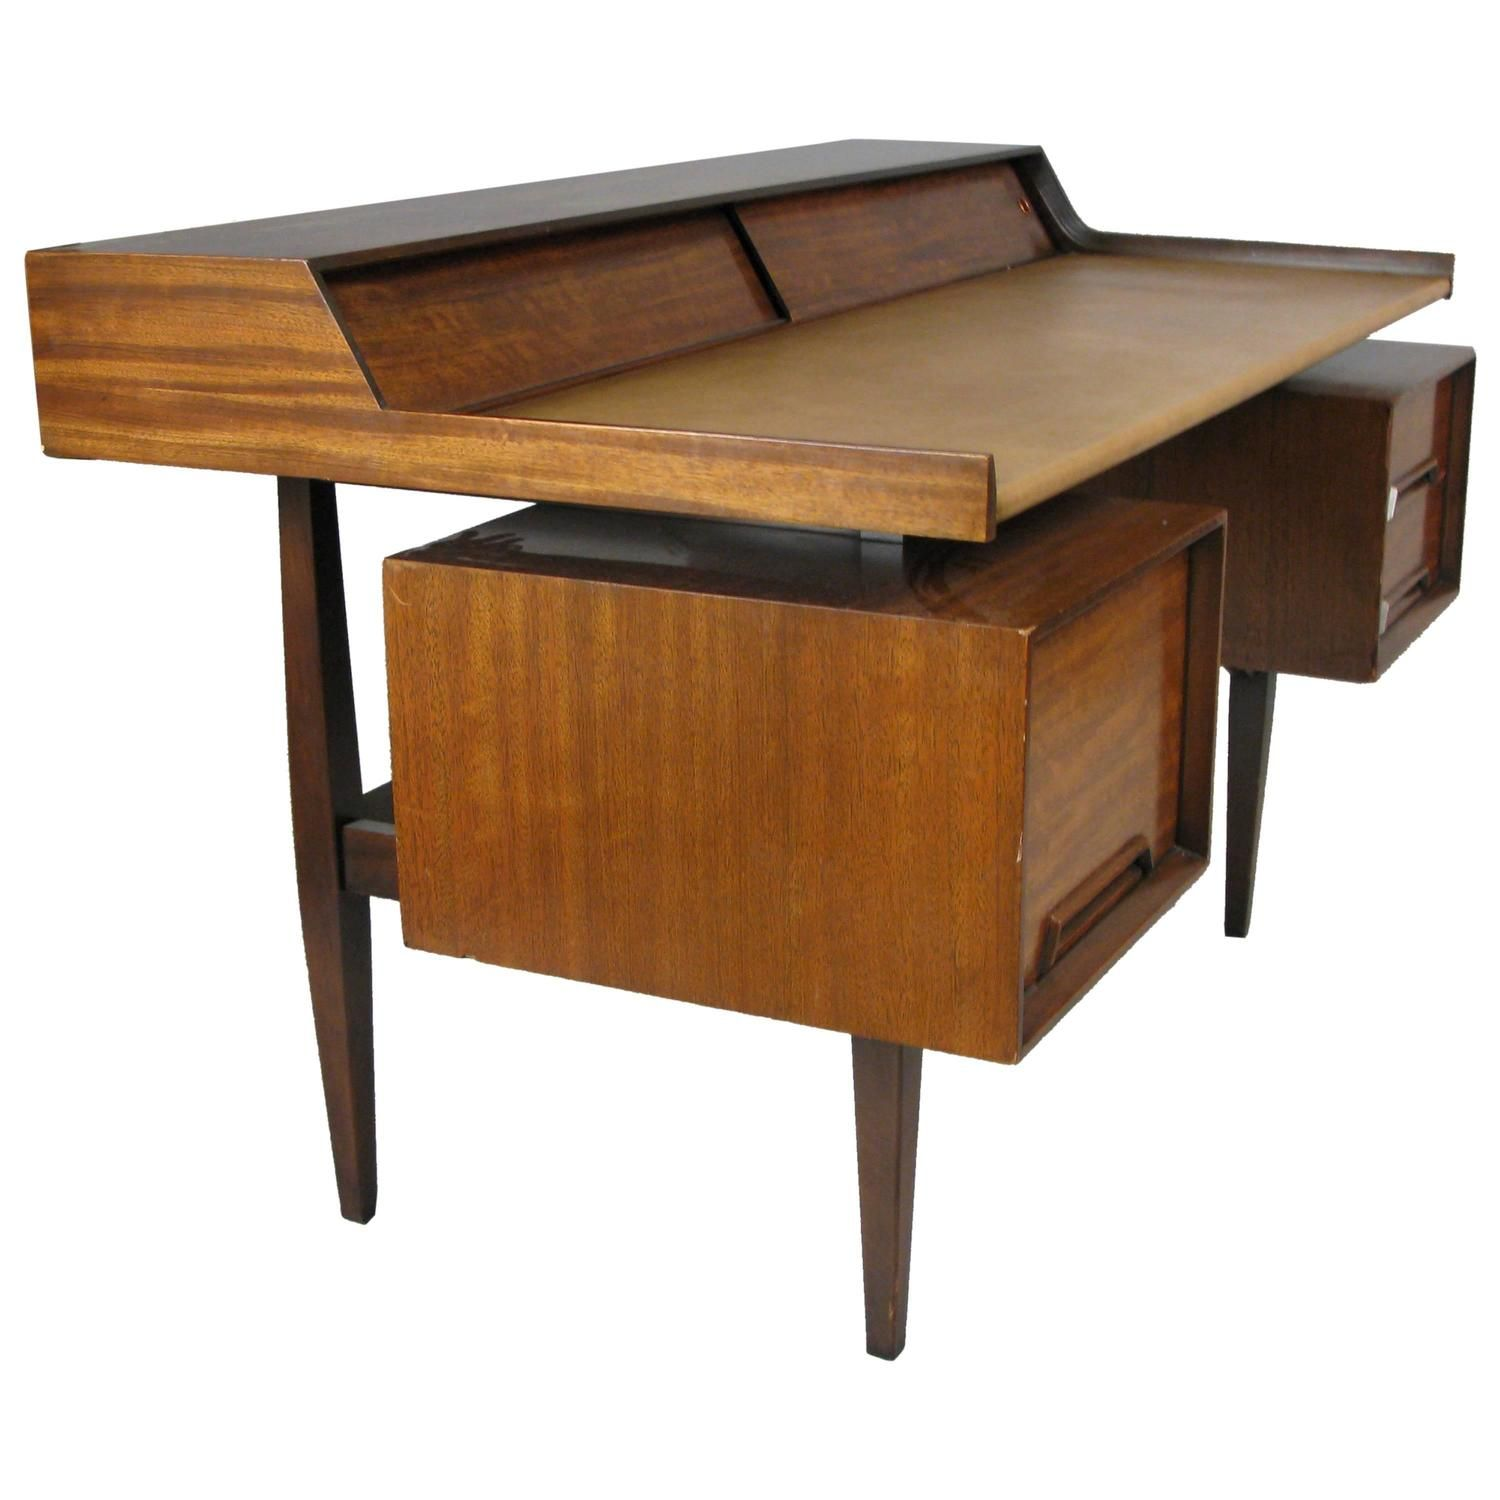 Vintage 1950s Modern Walnut And Leather Writing Desk Mid Century Modern Wood Desk Furniture Design Modern Mid Century Modern Furniture